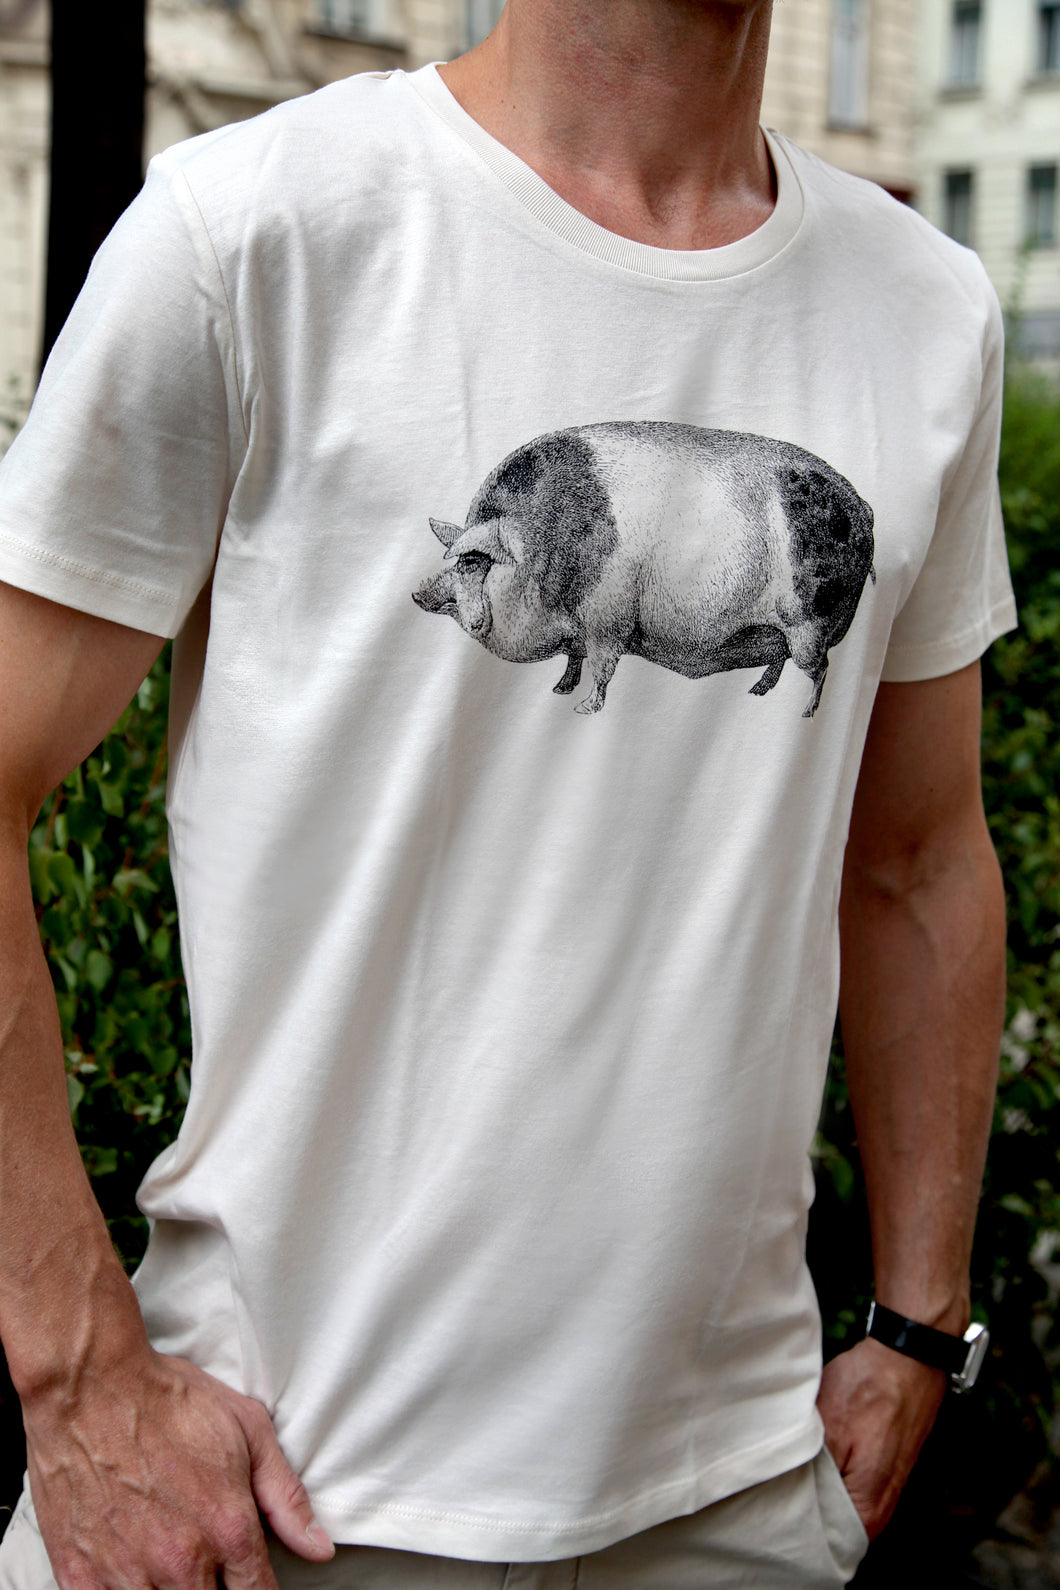 tshirt cotton woodcarving screenprinting HQ pig schwein